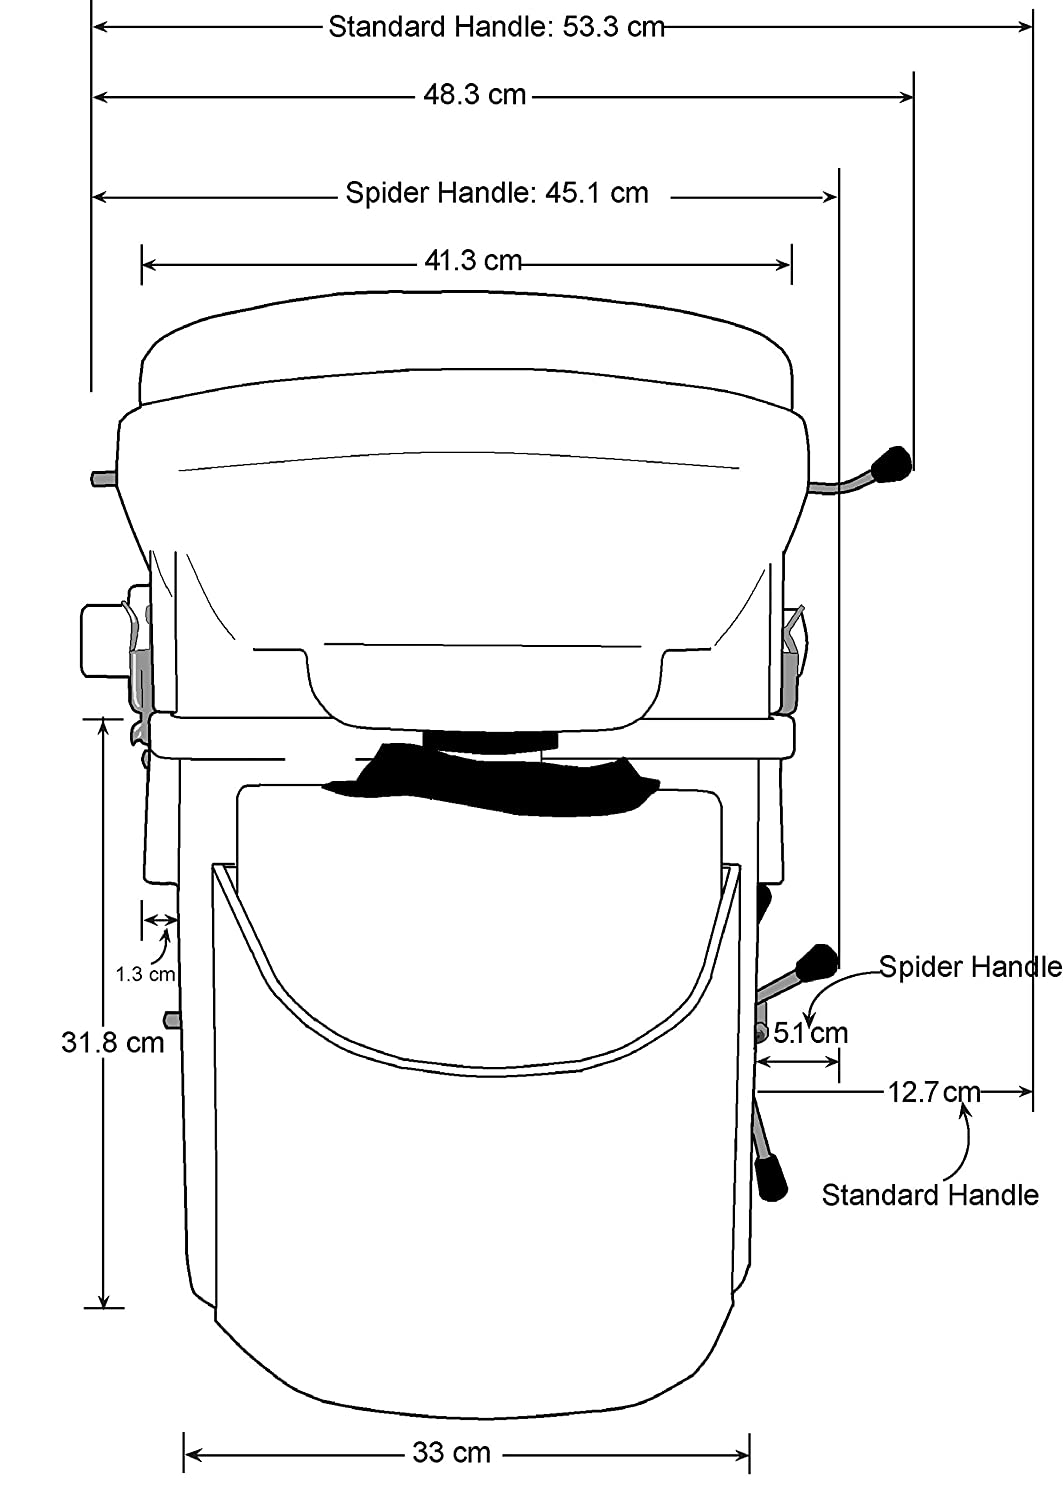 Natures Head composting toilet with standard handle: Amazon.es: Bricolaje y herramientas